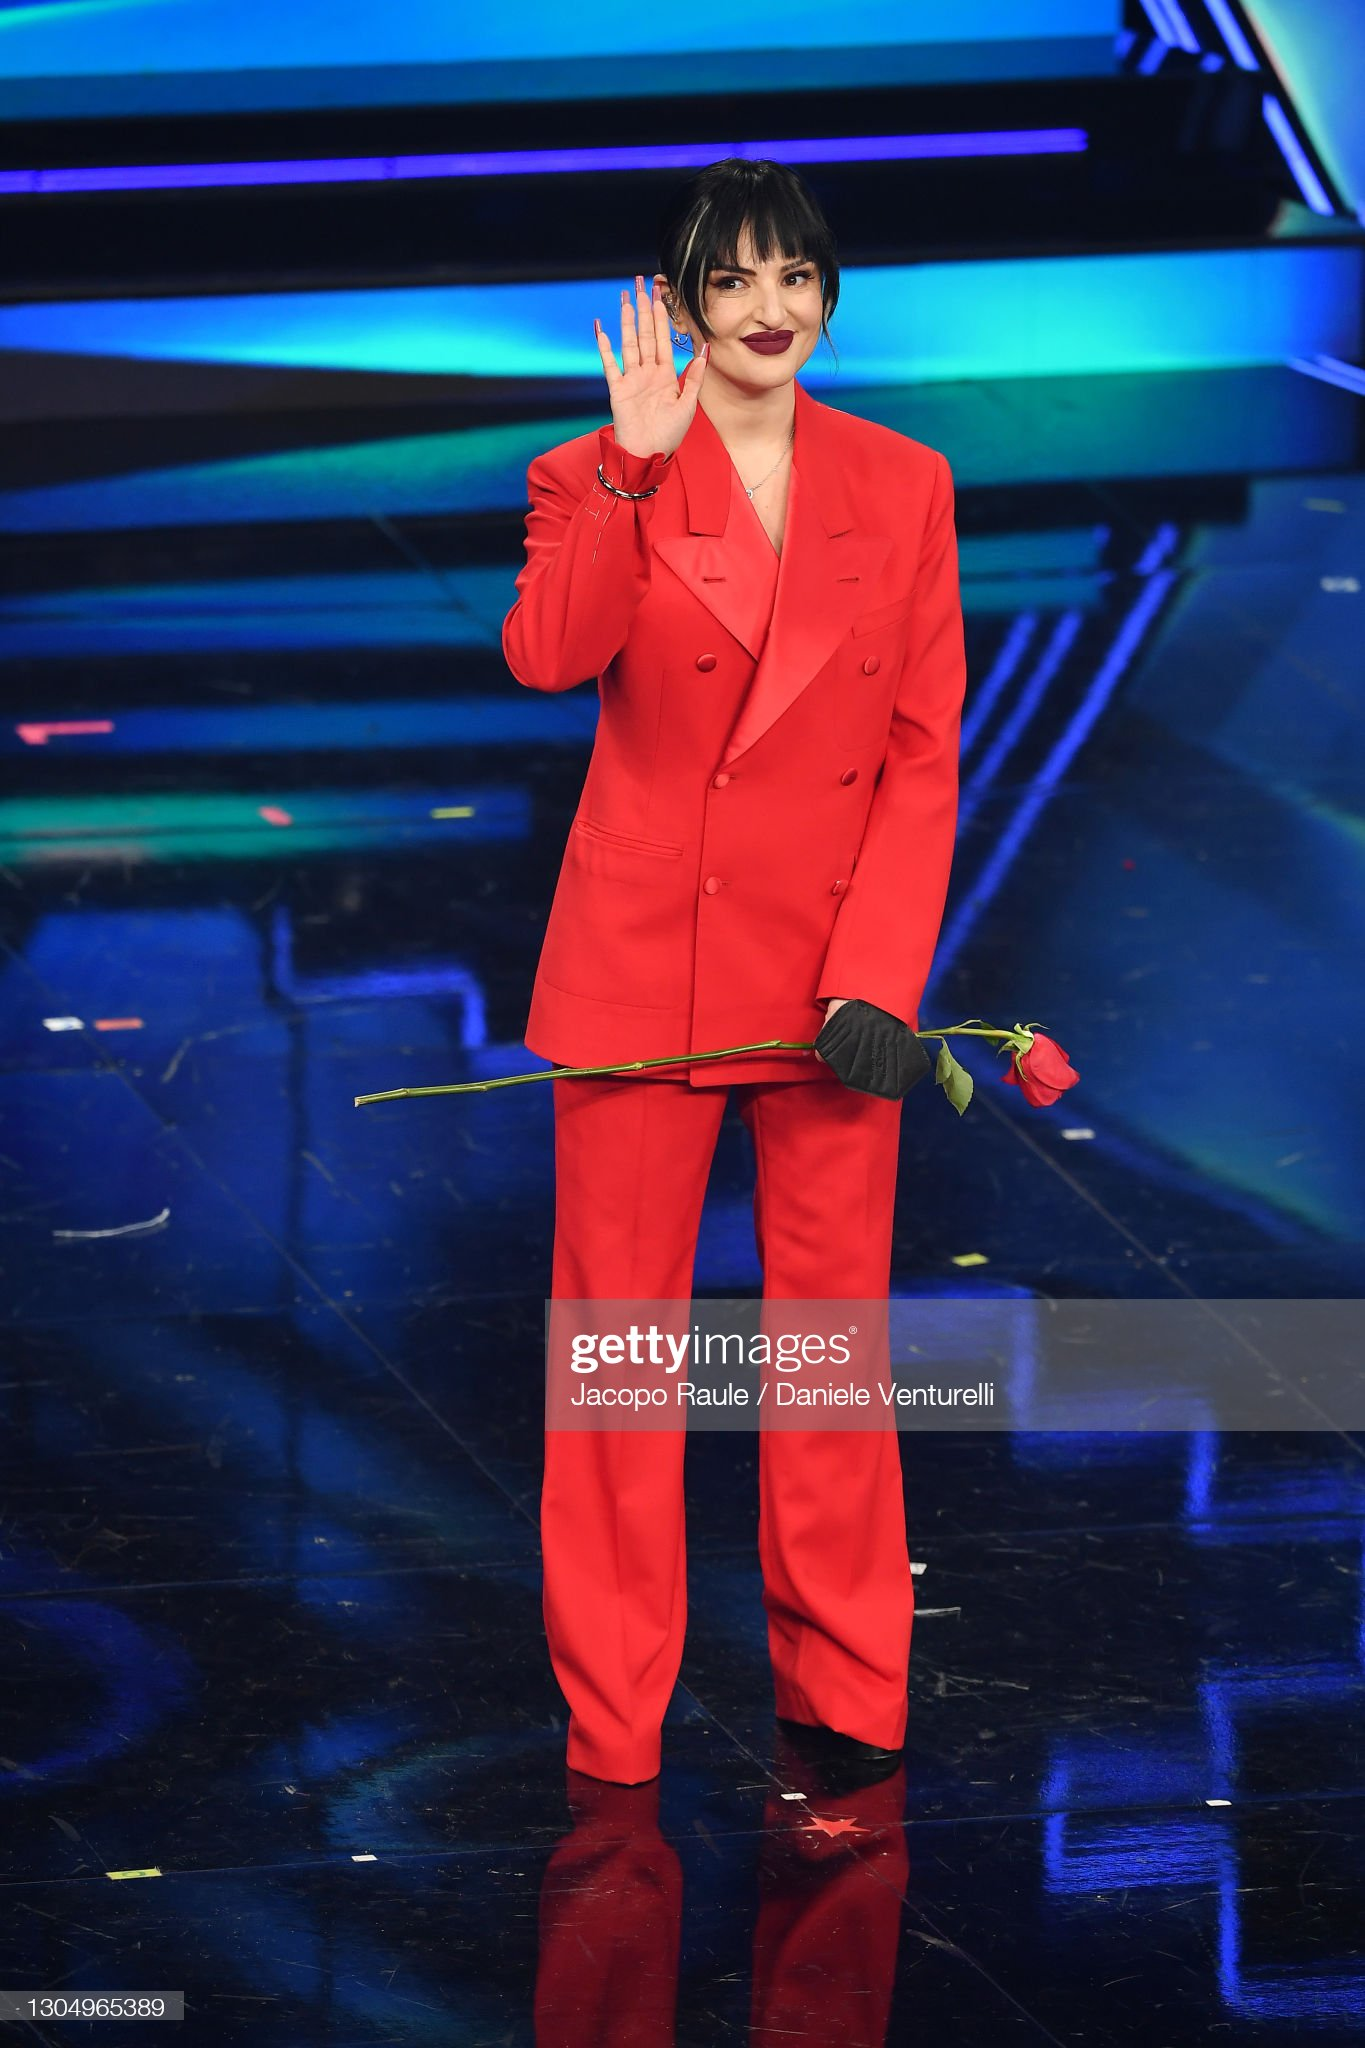 arisa-performs-at-the-71th-sanremo-music-festival-2021-at-teatro-on-picture-id1304965389?s=2048x2048